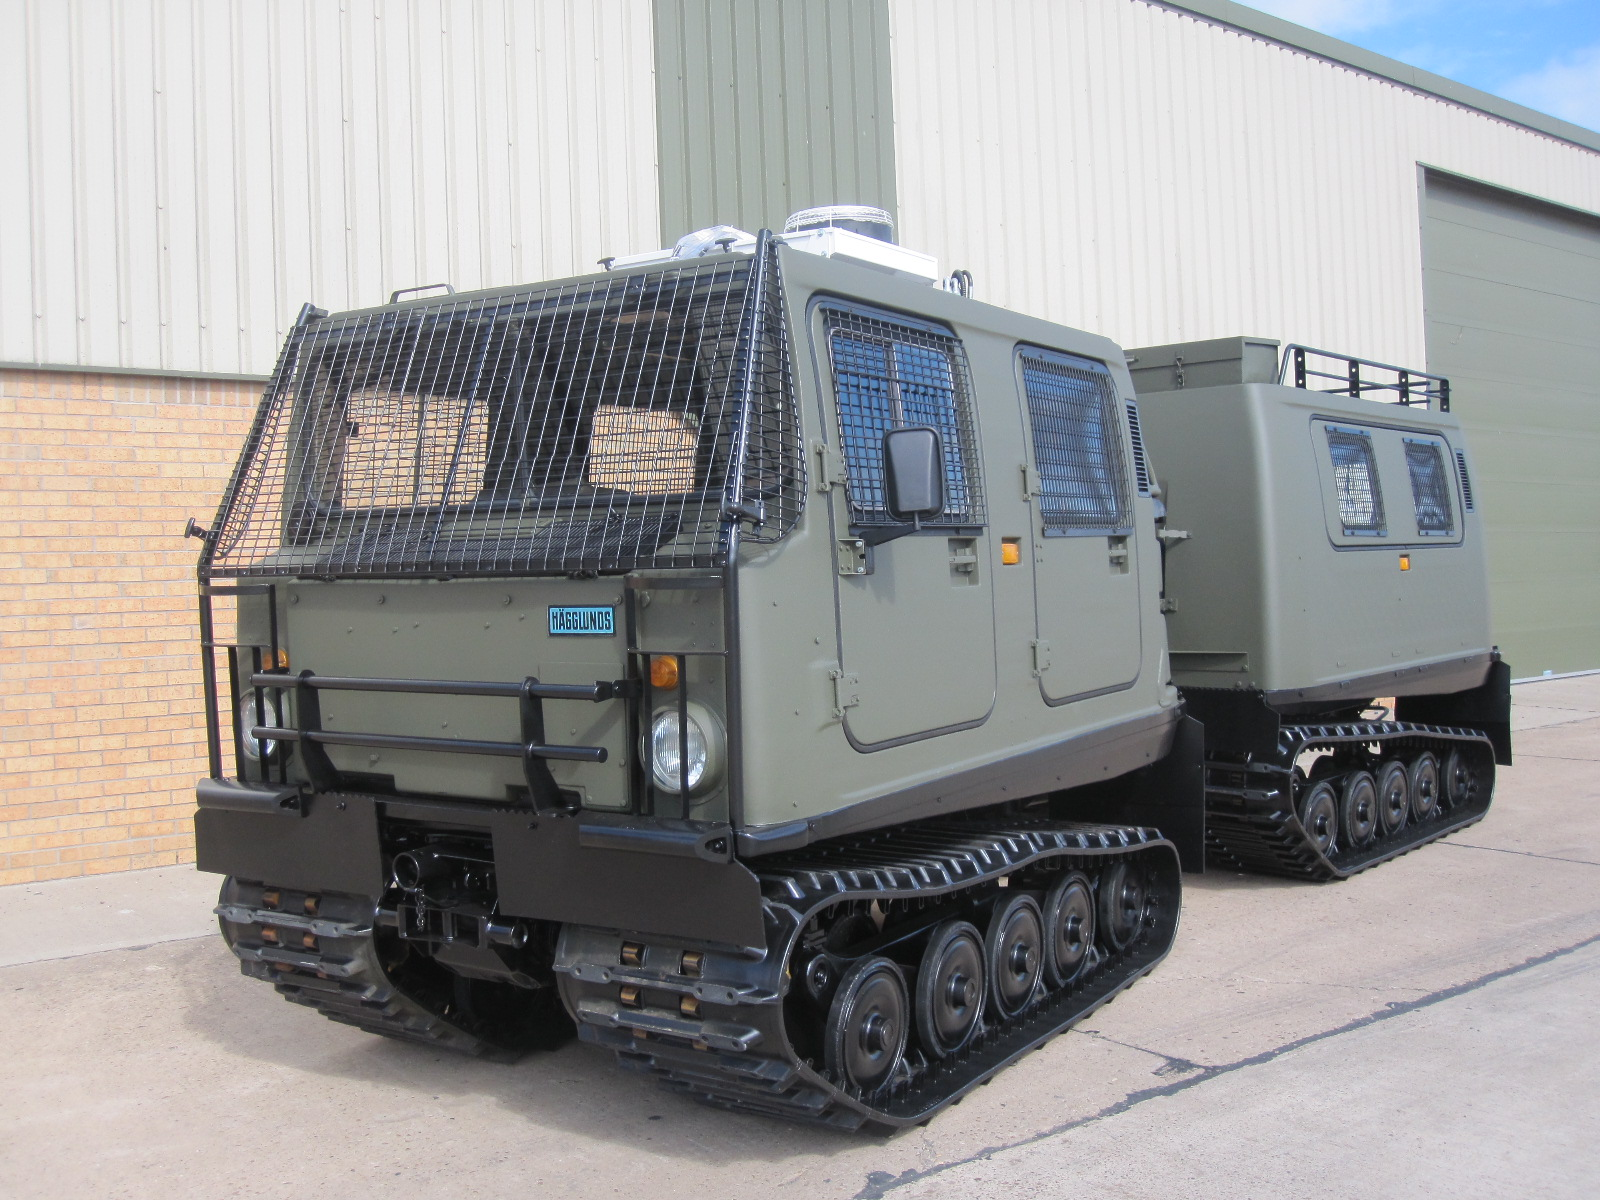 Hagglund BV206 Personnel Carrier (Petrol/Gasolene) | Military Land Rovers 90, 110,130, Range Rovers, Mercedes for Sale